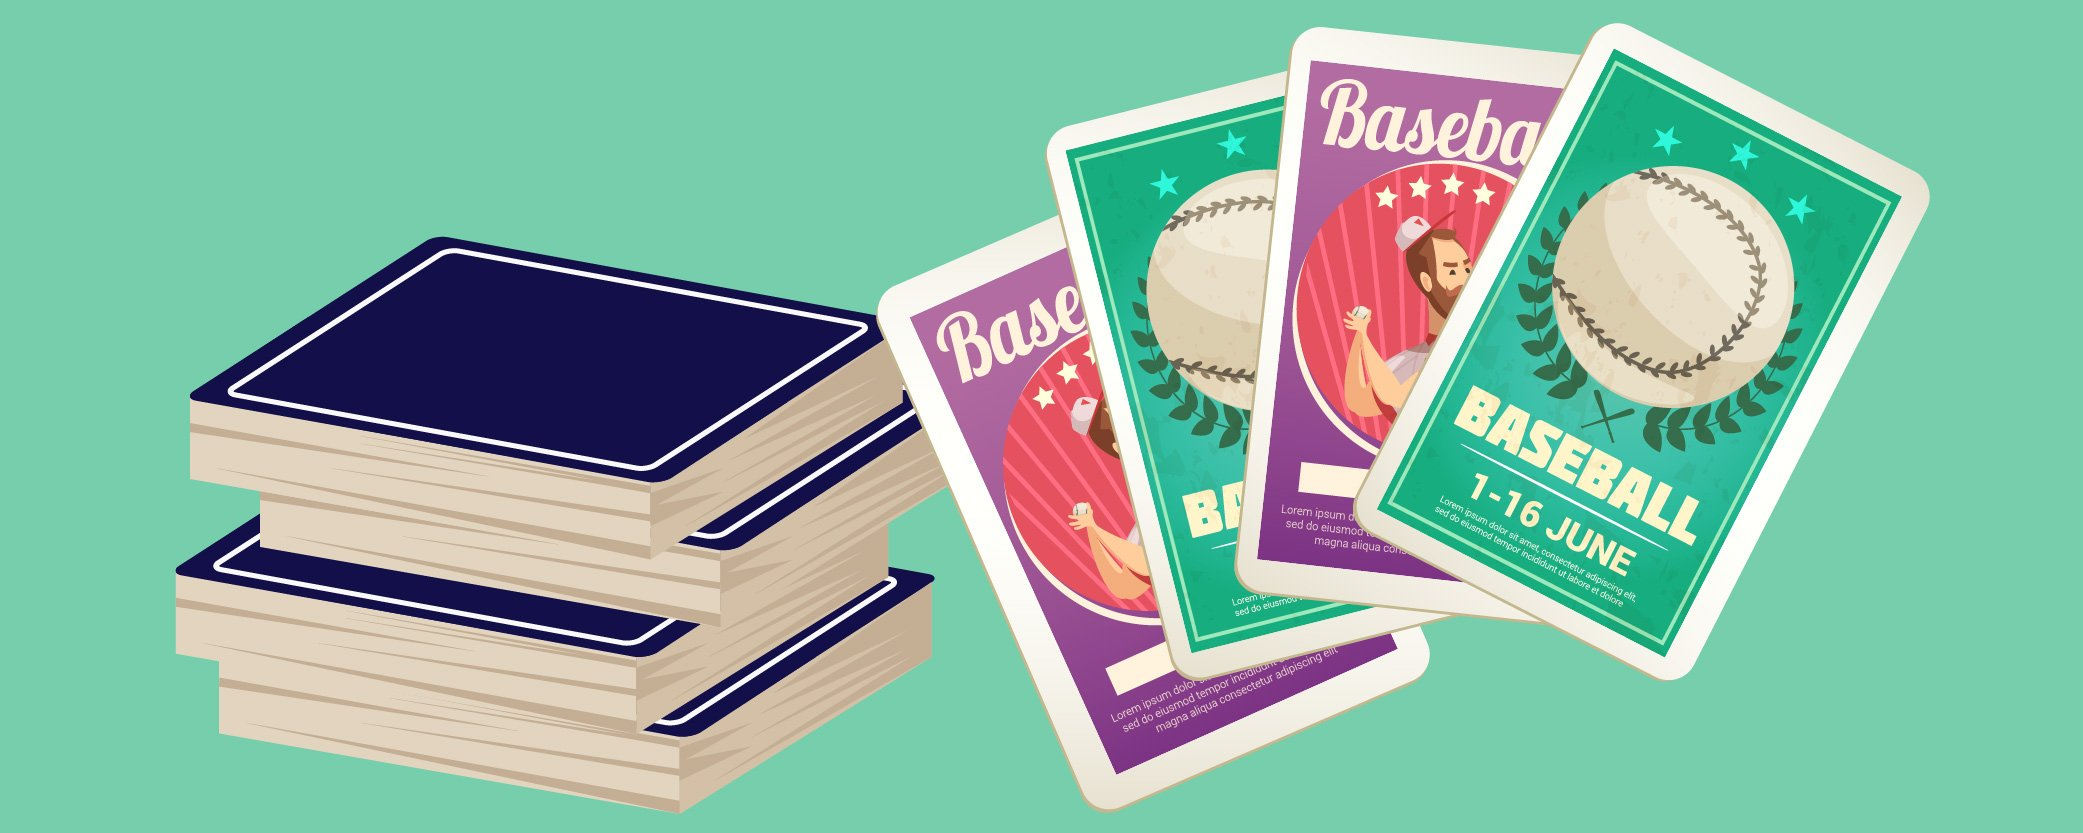 10.Our Top 5 Tips for Building a Card Collection